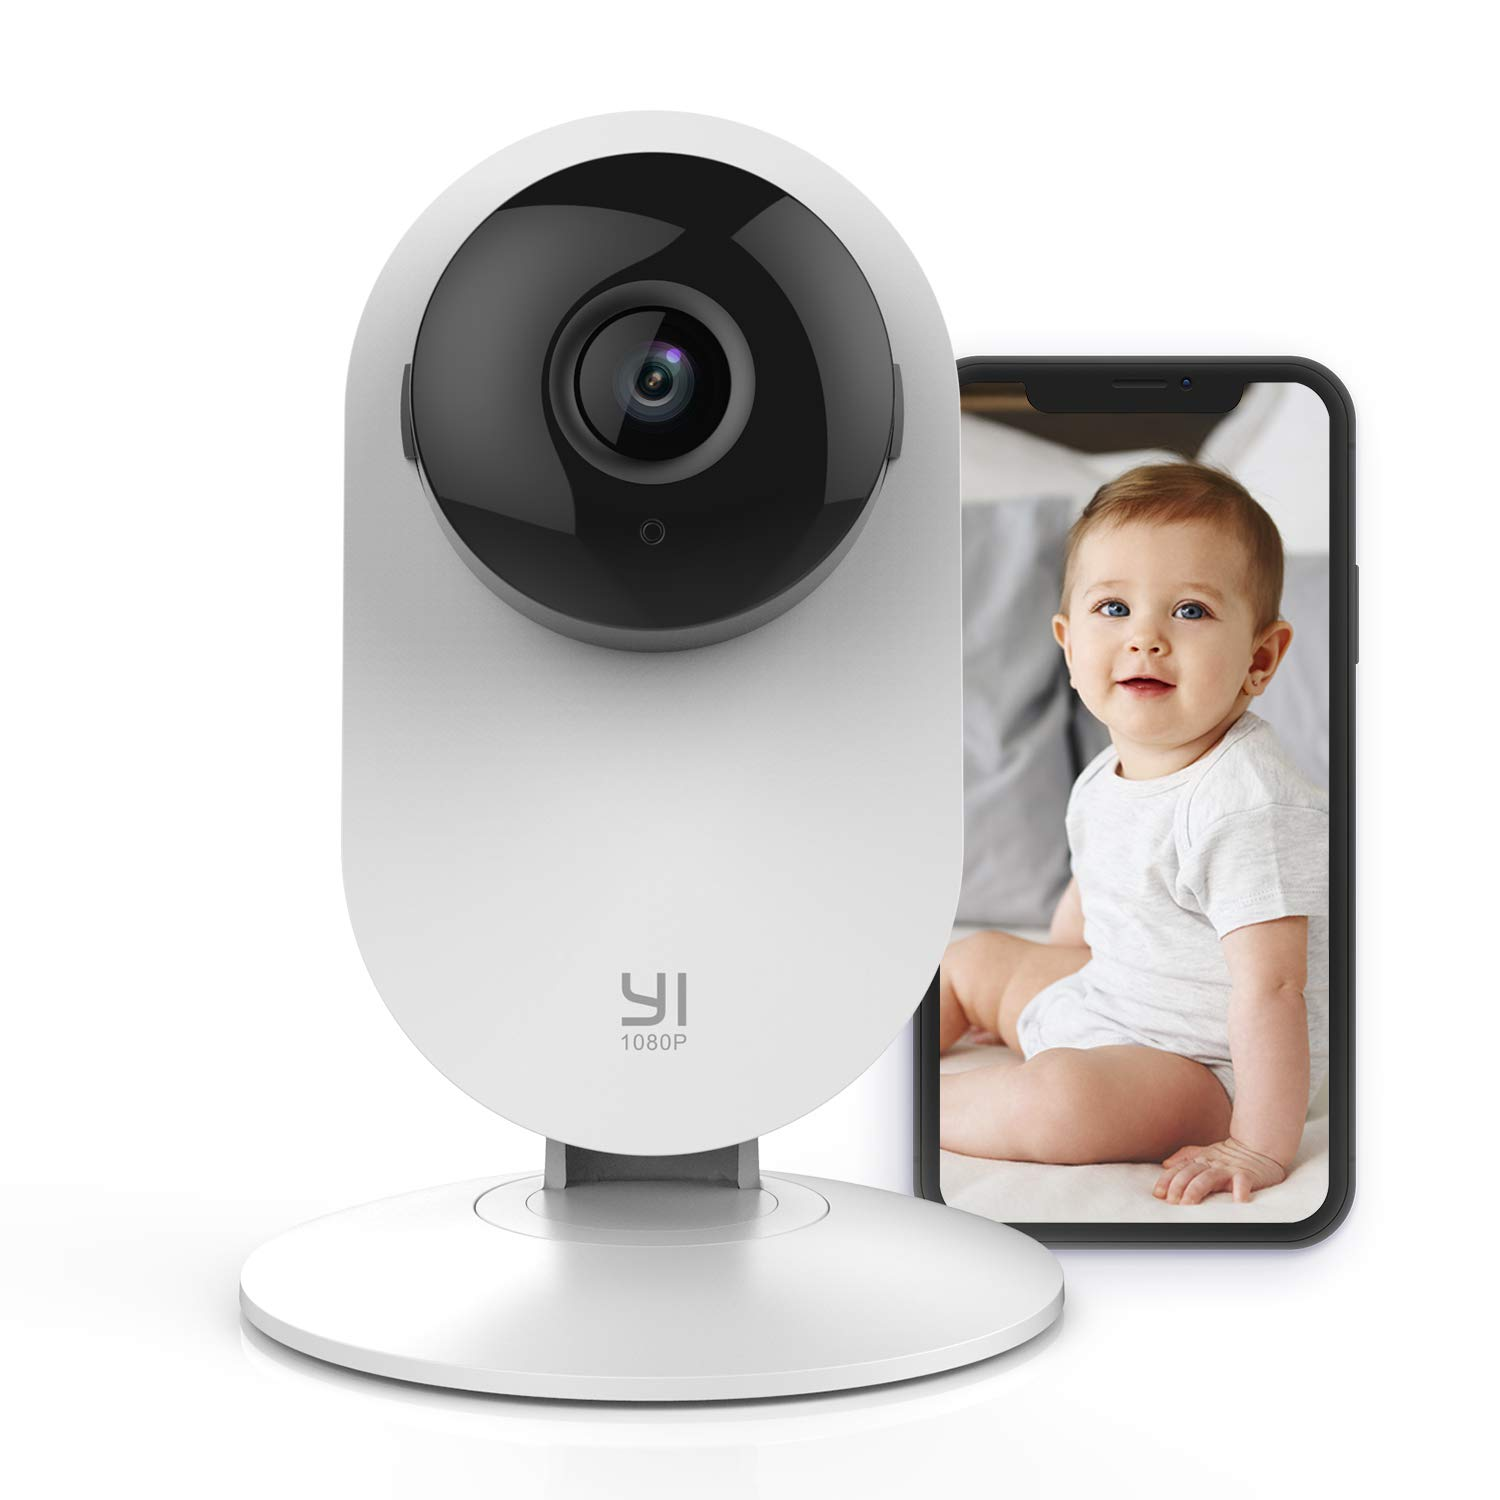 YI Baby Monitor with Camera and Audio HD WiFi Pet Cam, Sound Motion Human Detection, 2- Way Audio, Smartphone app, Night Vision, Nanny Elder, Works with Alexa, iOS, Android